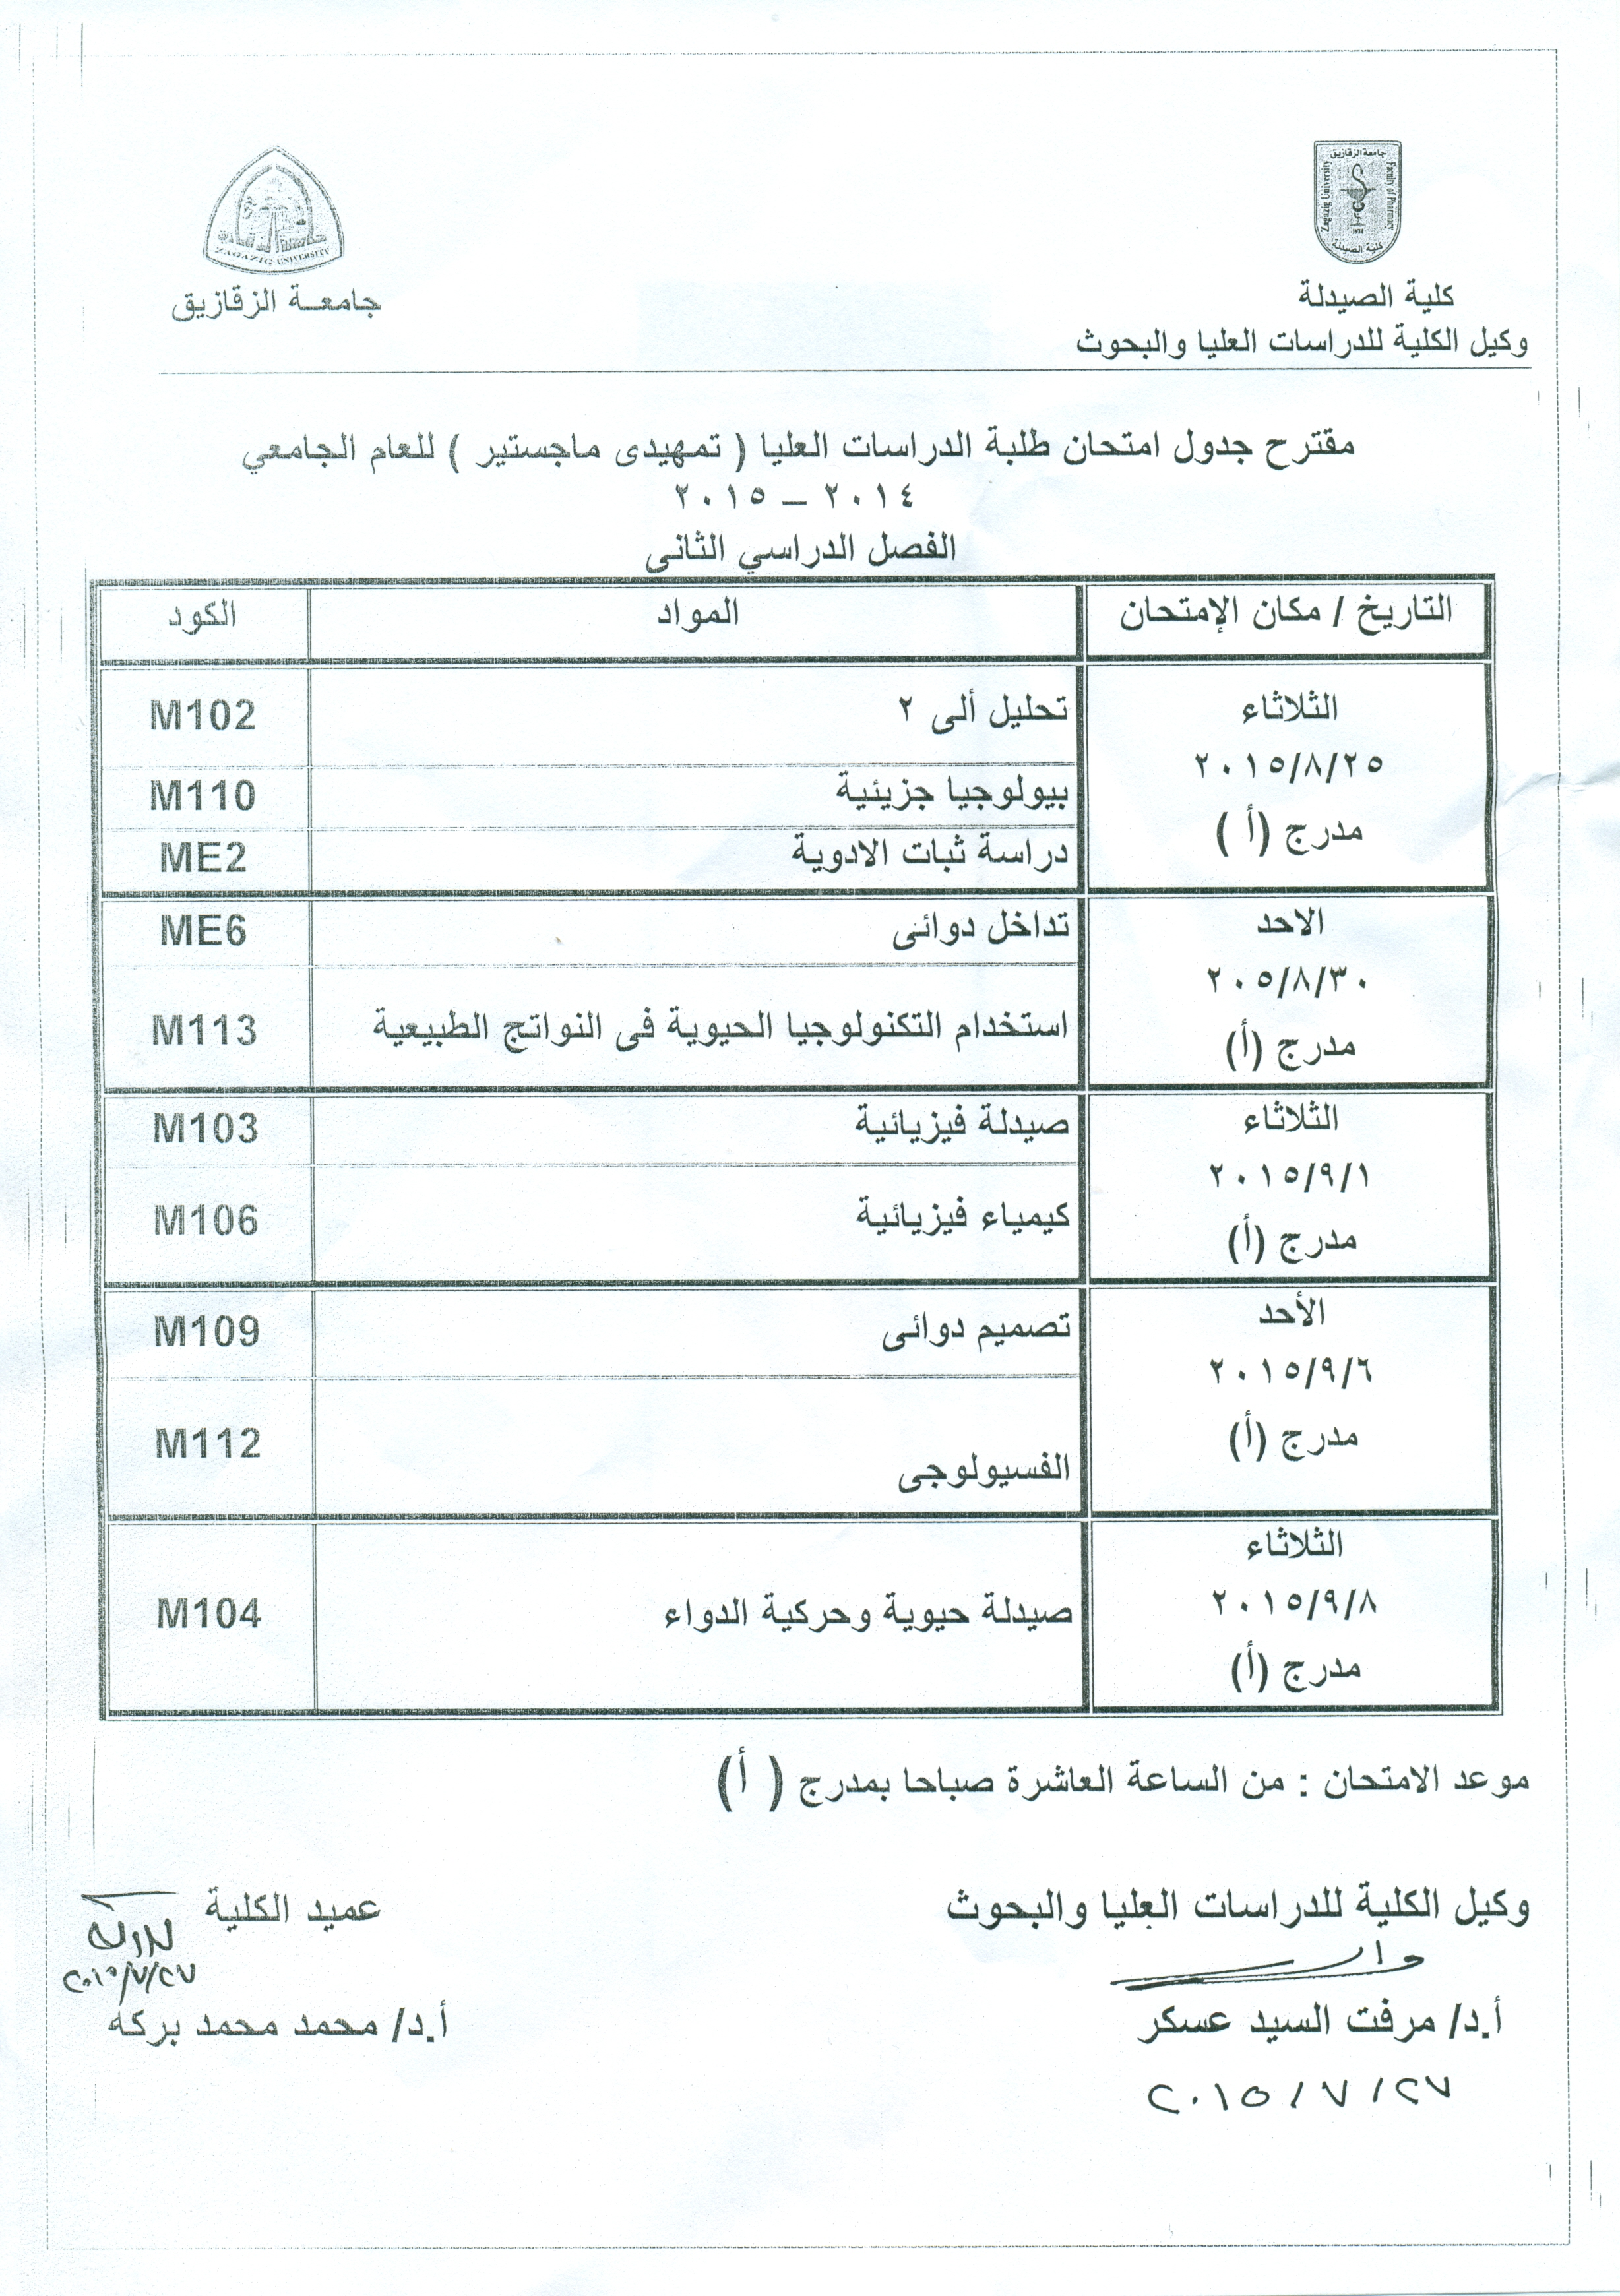 Proposed graduate exam (Preliminary MA for the academic year 2014/2015) second semester